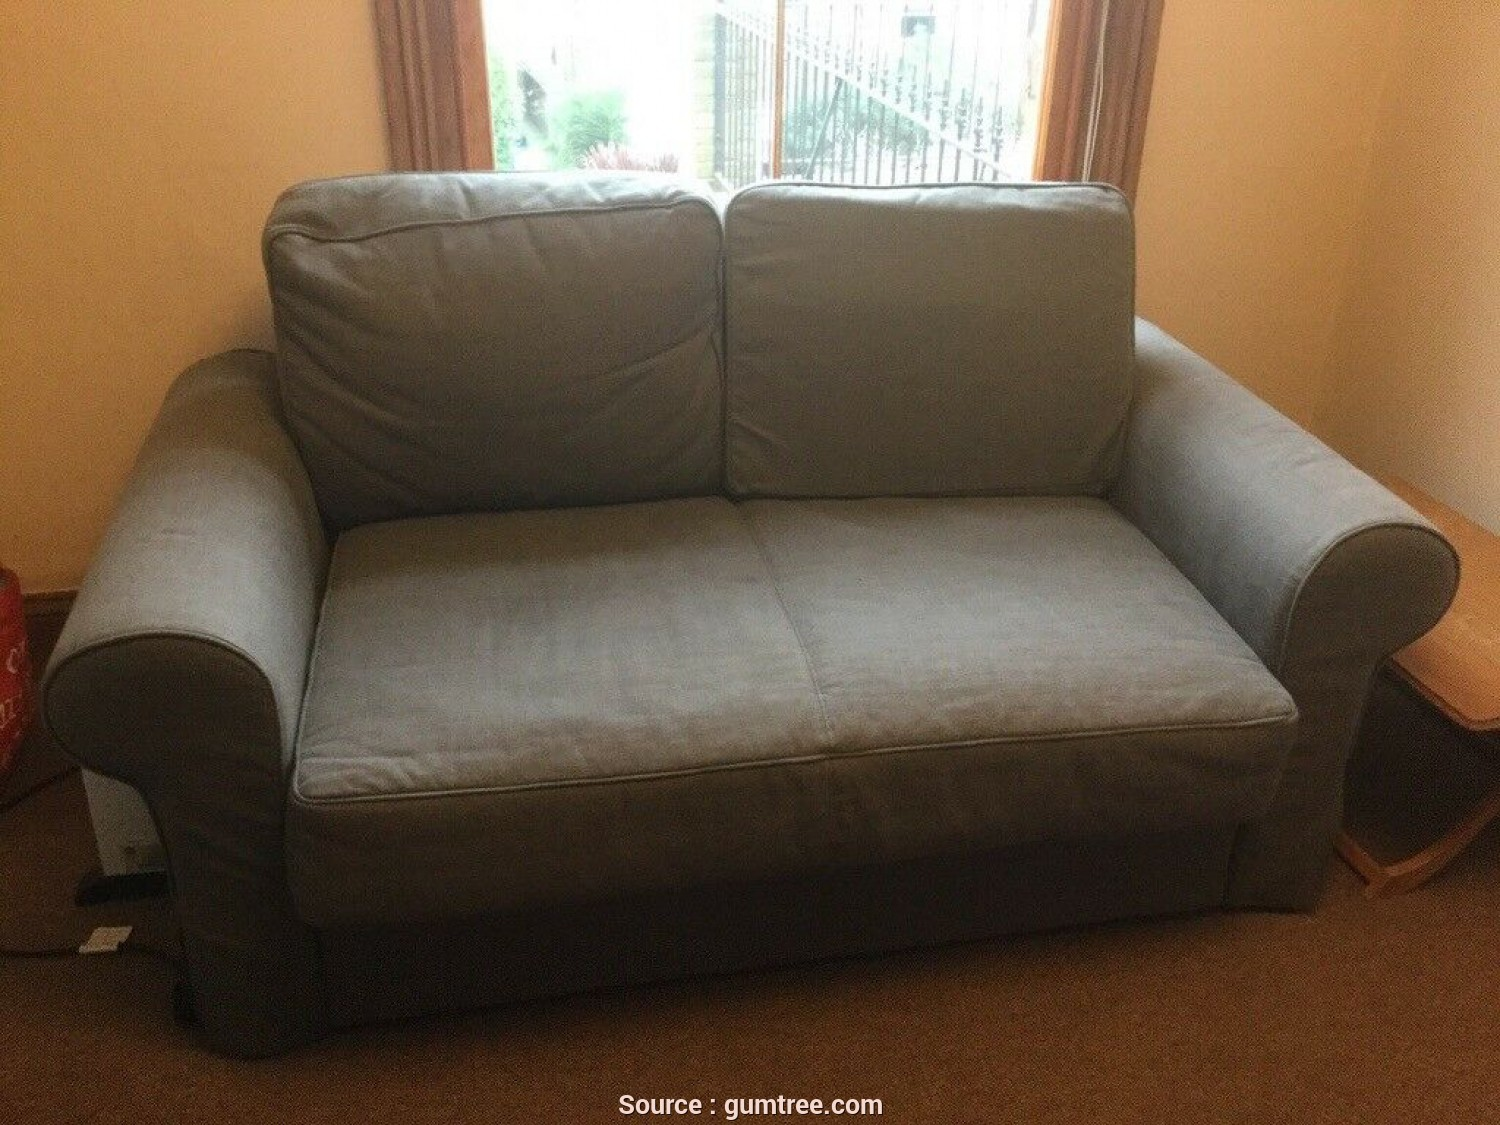 Ikea Backabro Gumtree, Eccezionale Sofa,, IKEA BACKABRO, Grey, In Ramsgate, Kent, Gumtree